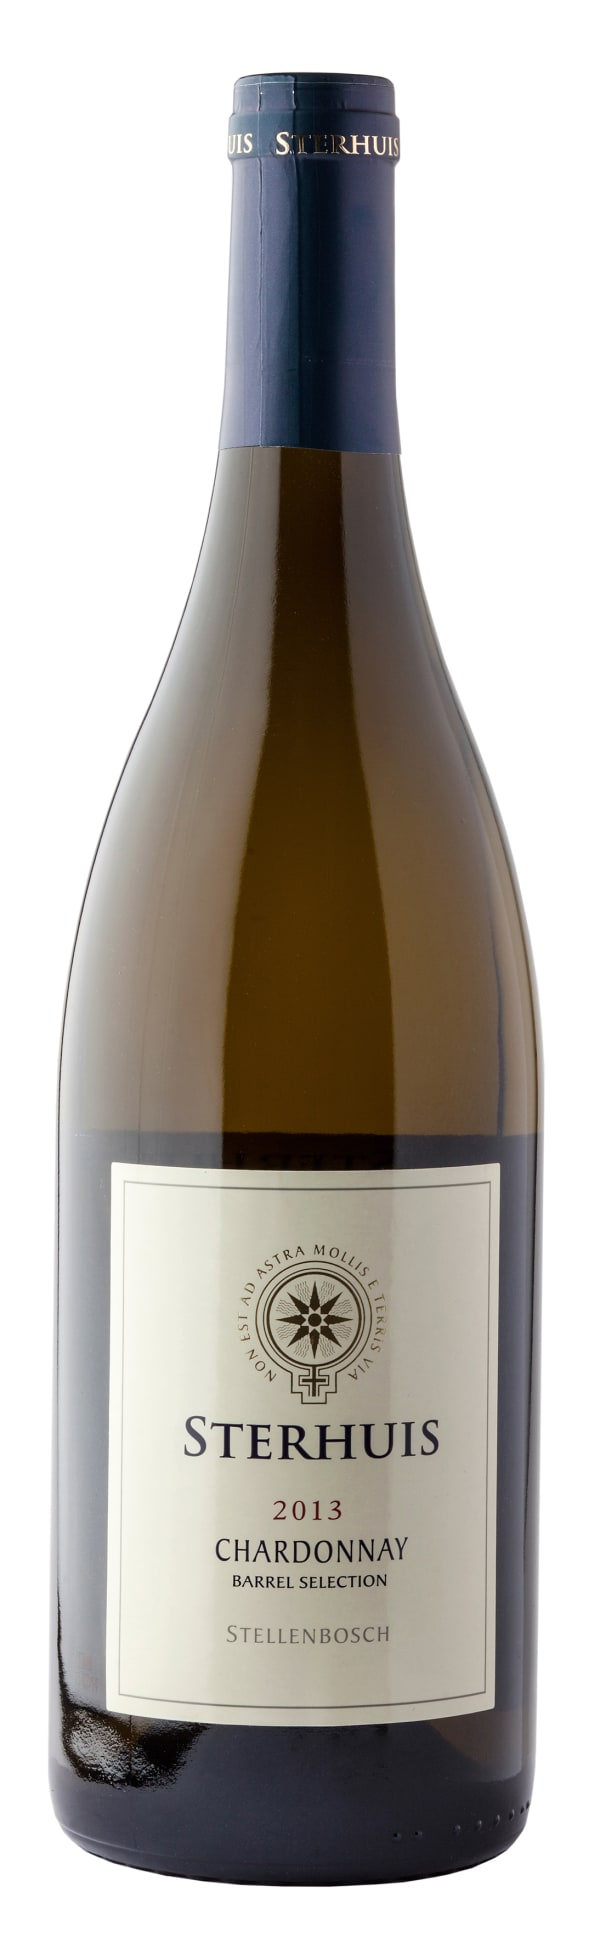 Sterhuis Chardonnay Barrel Selection 2015